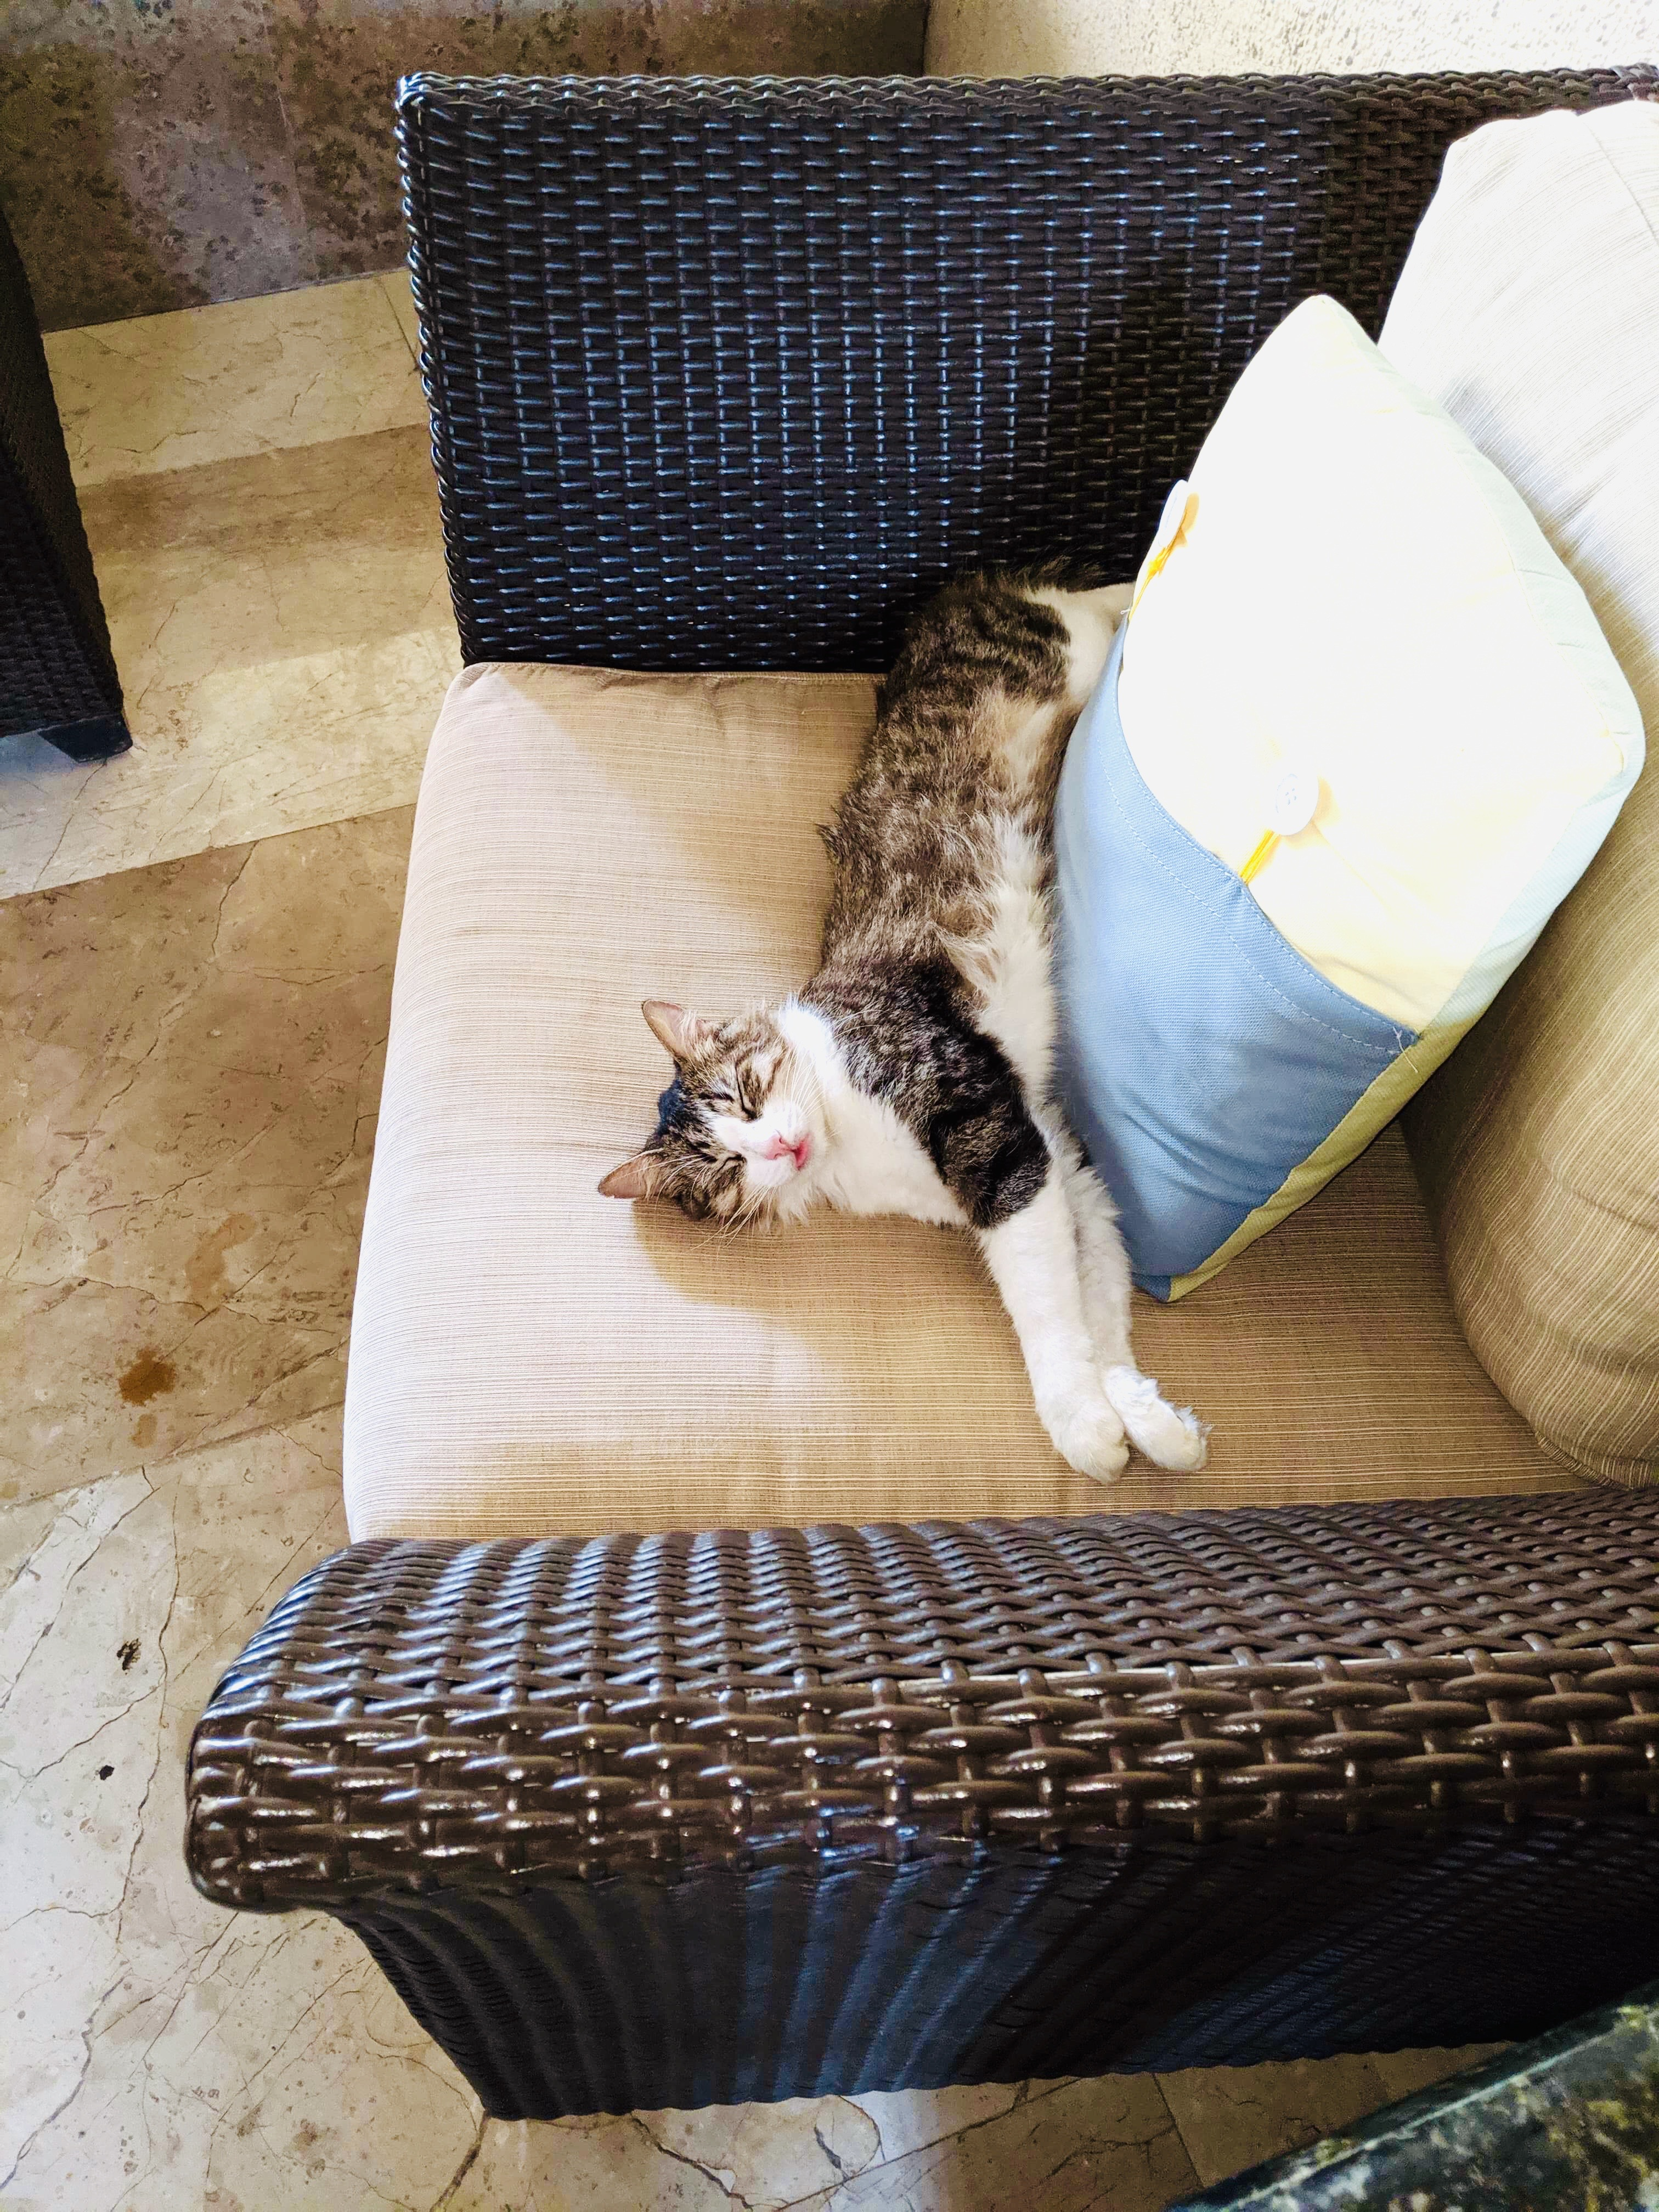 A cat sleeping on a chair in the hotel lobby